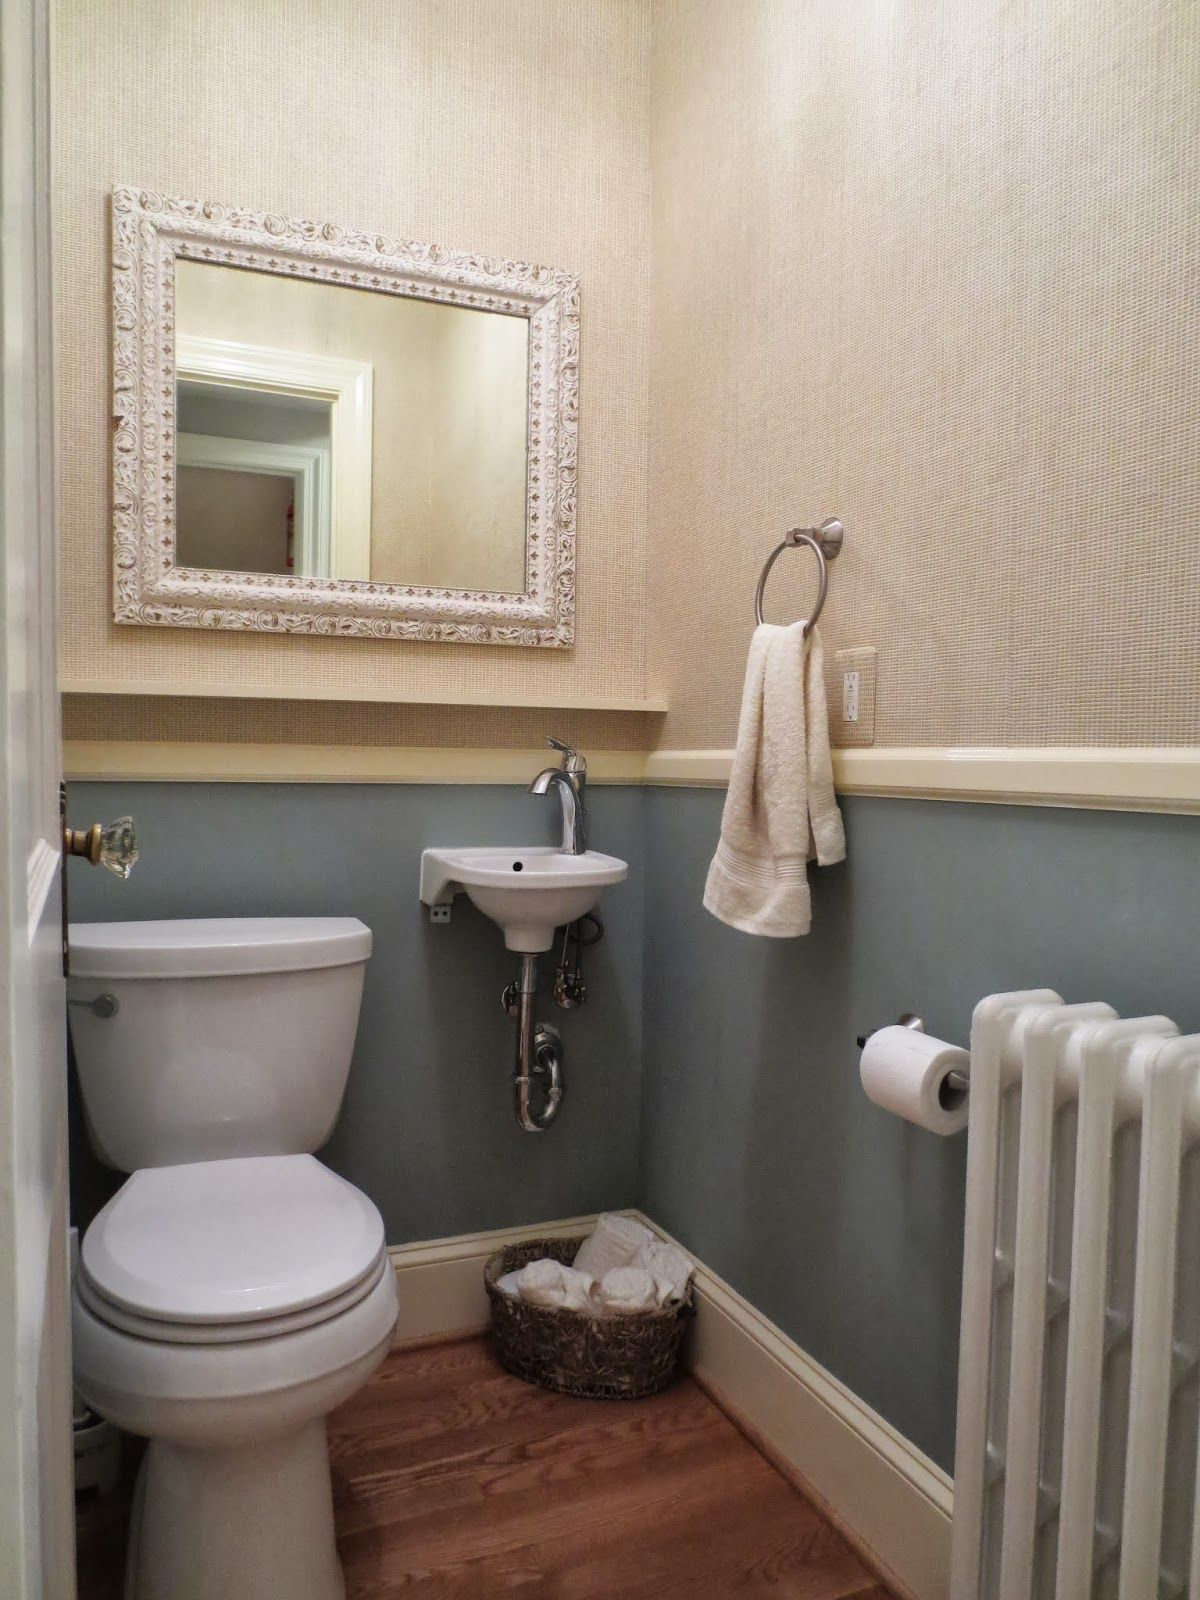 Bath Wood Chairail Chair Rail Molding To Break Up The Space Above The Chair Rail Is Grass Powder Room Half Bath Remodel Bathroom